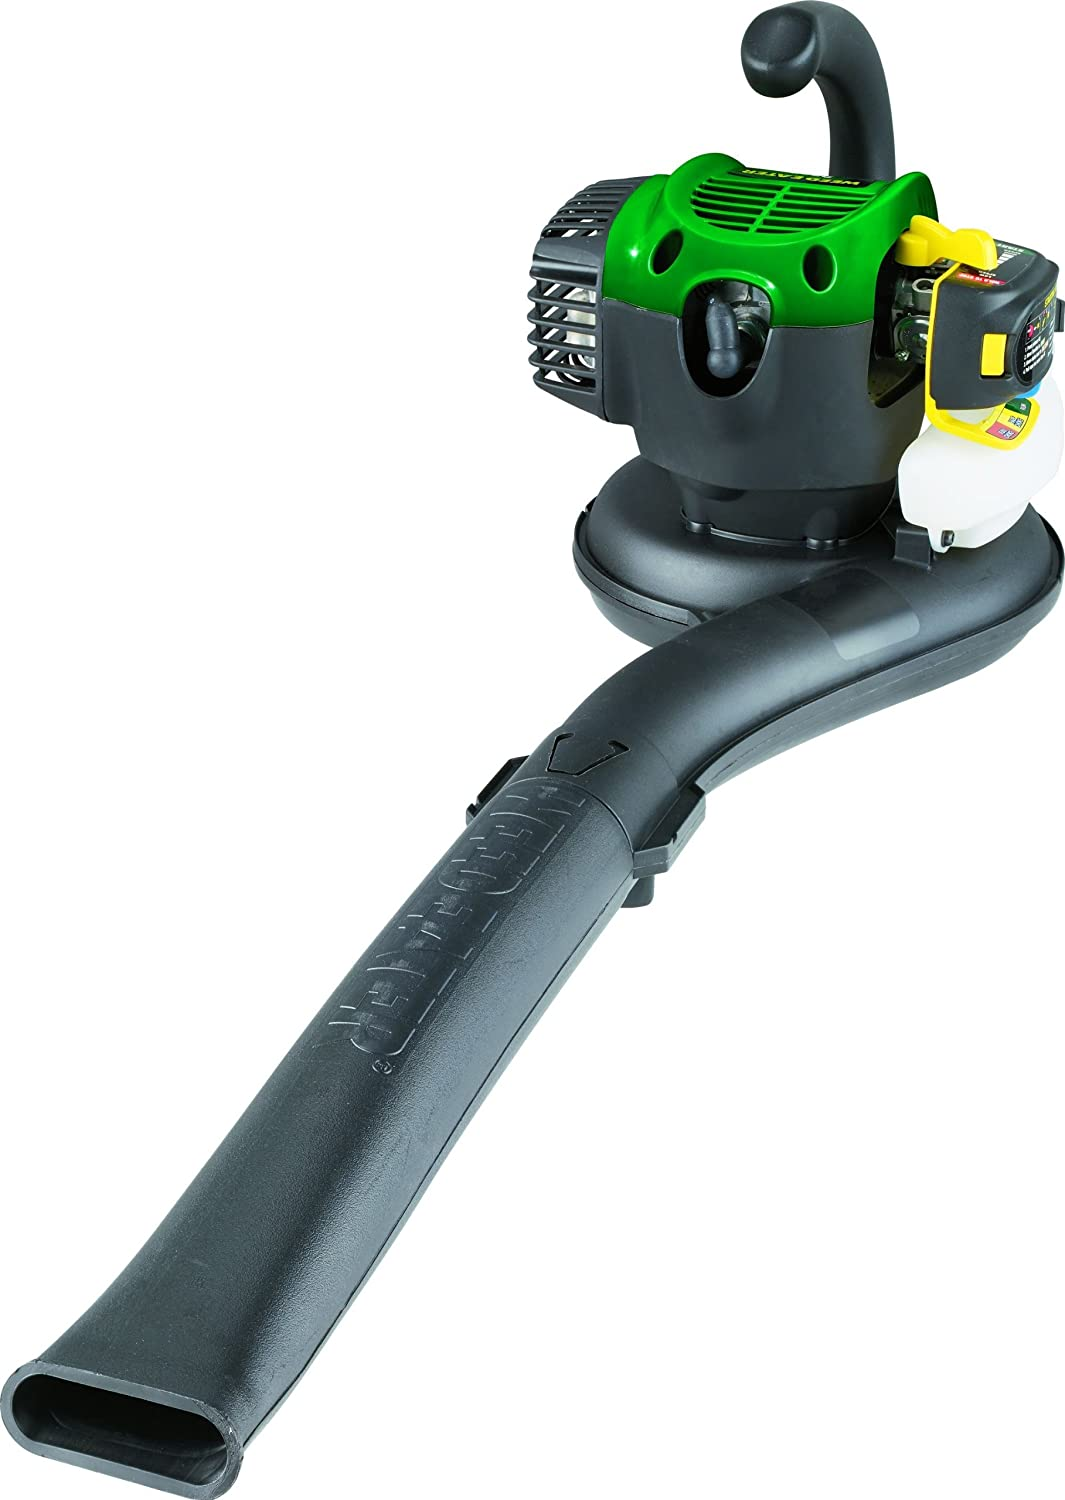 Weed Eater FB25 25cc 2 Stroke Gas Powered 170 MPH Blower ...